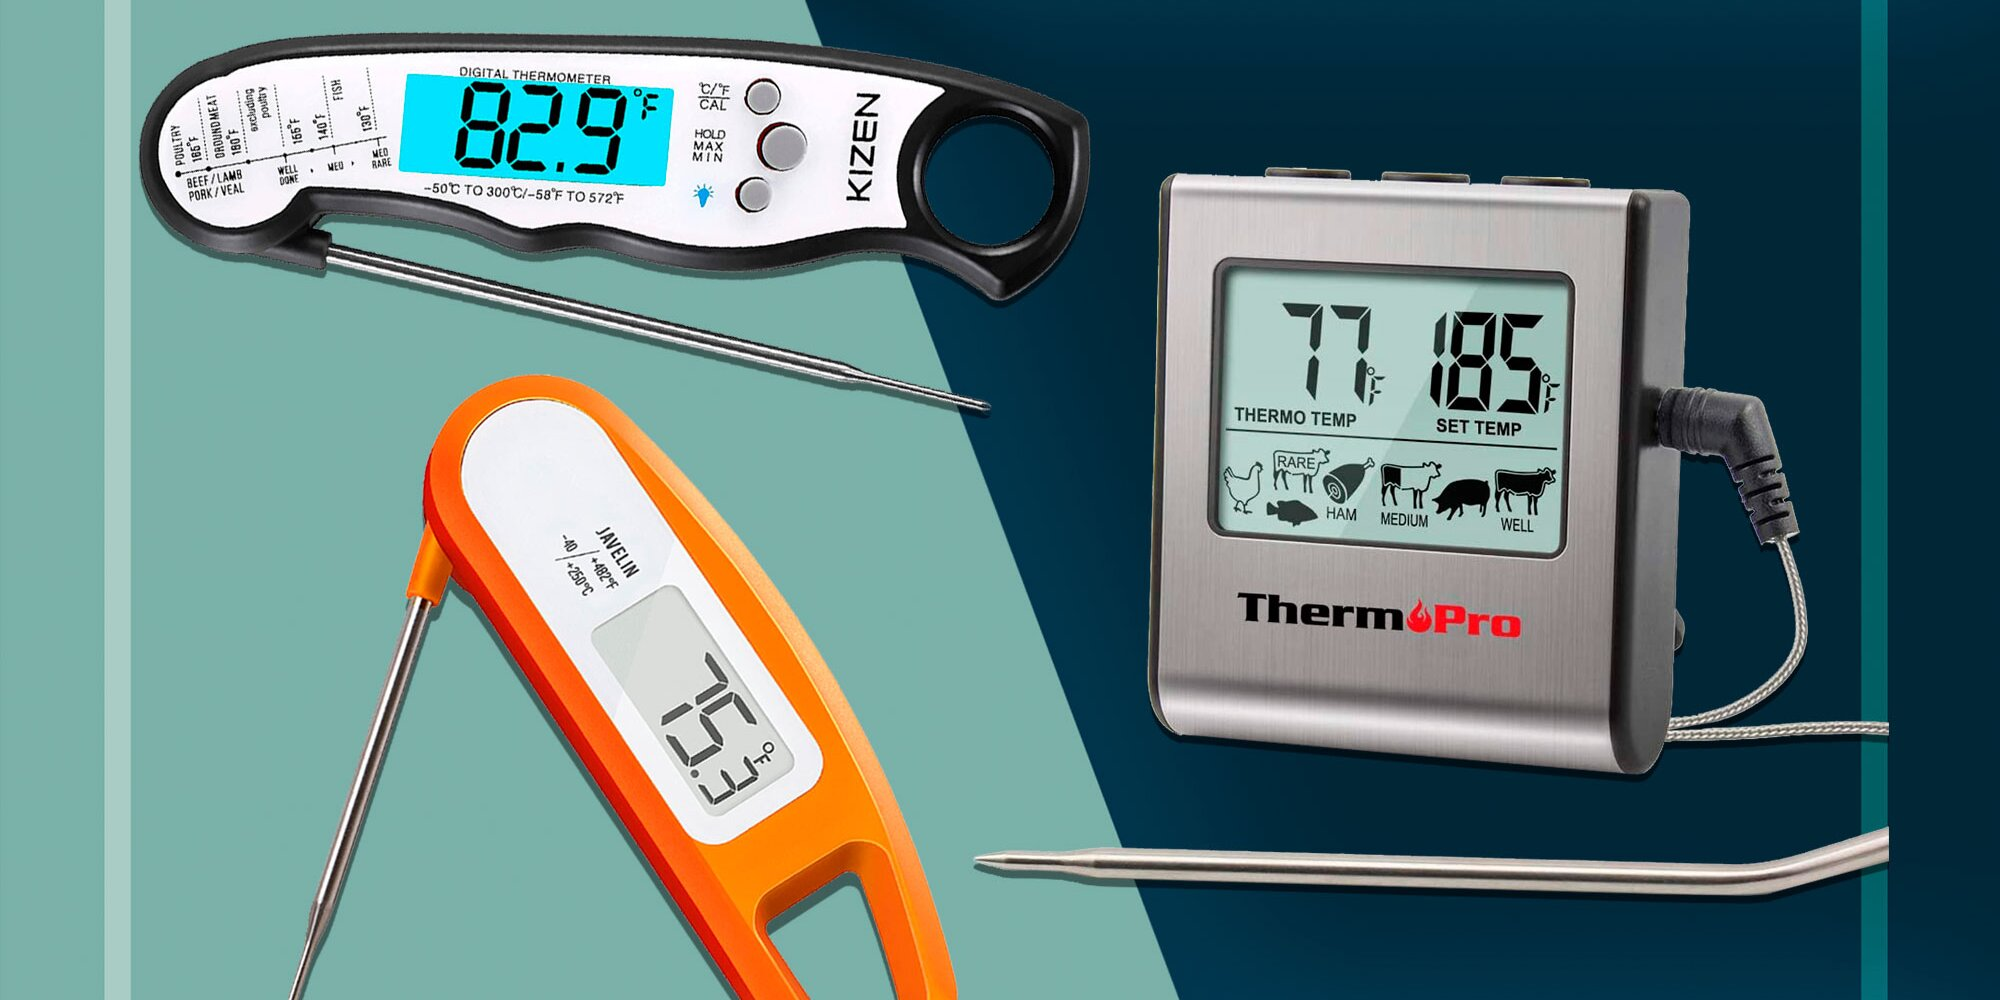 The Best Meat Thermometers, According to Thousands of Reviews